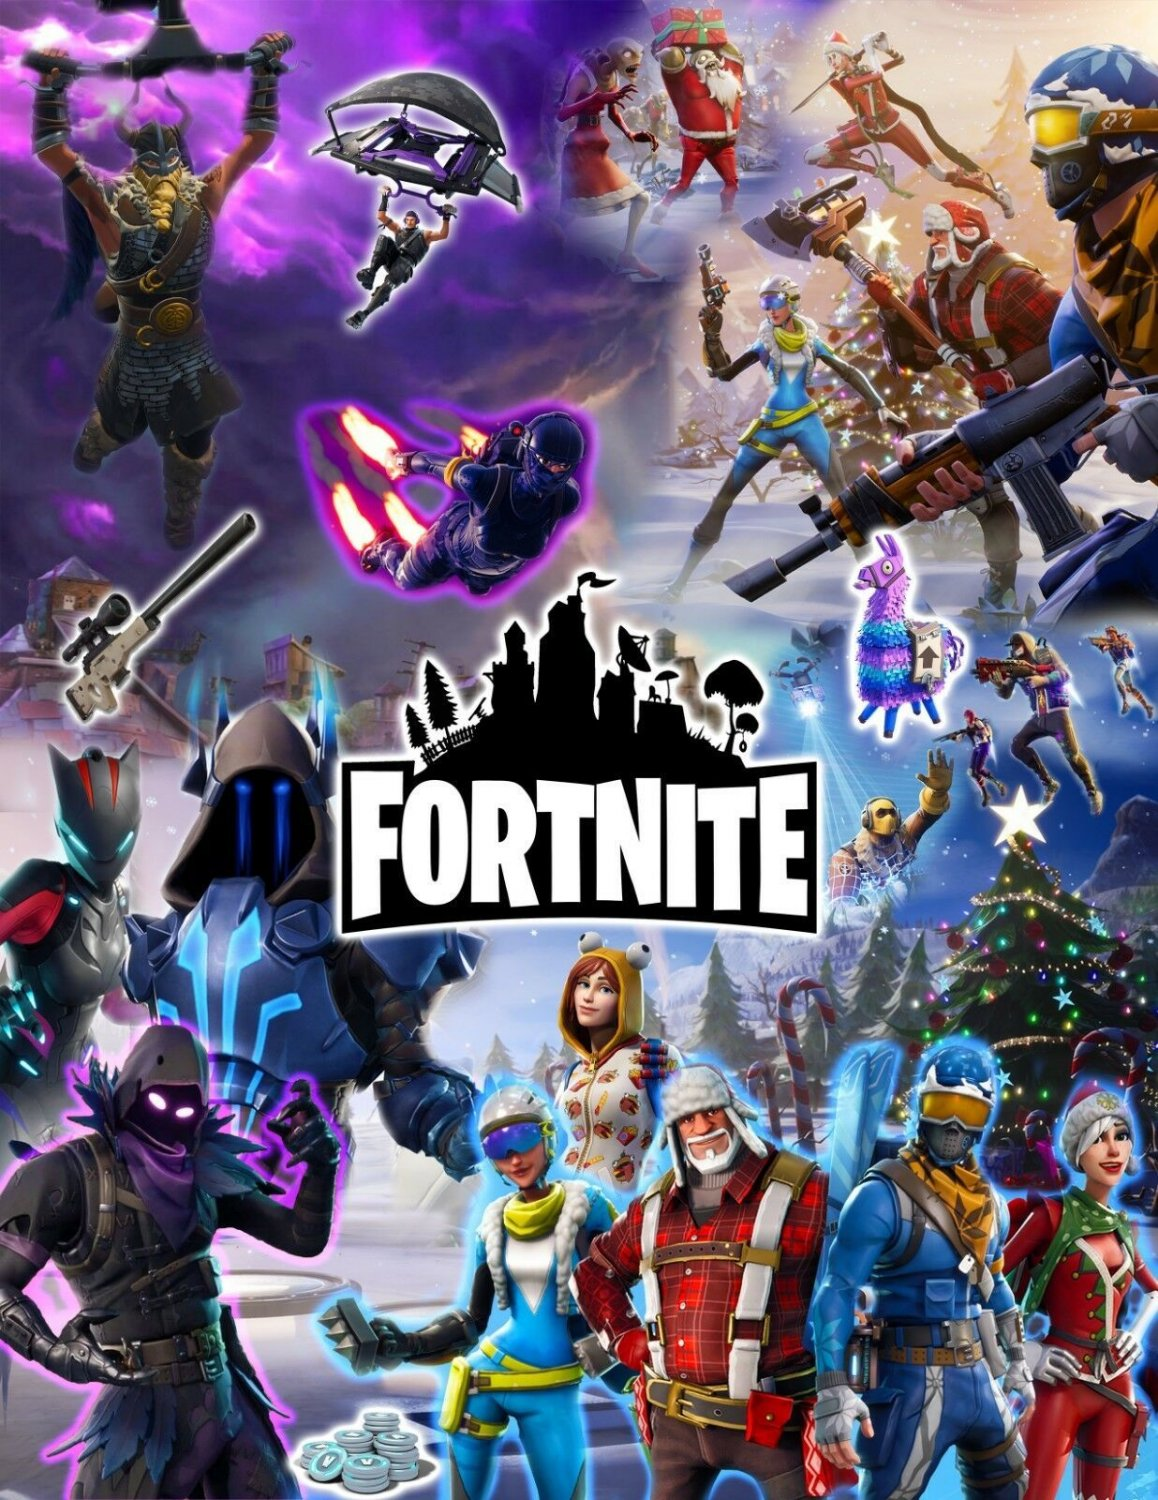 Fortnite Game   Poster 12x19 inches